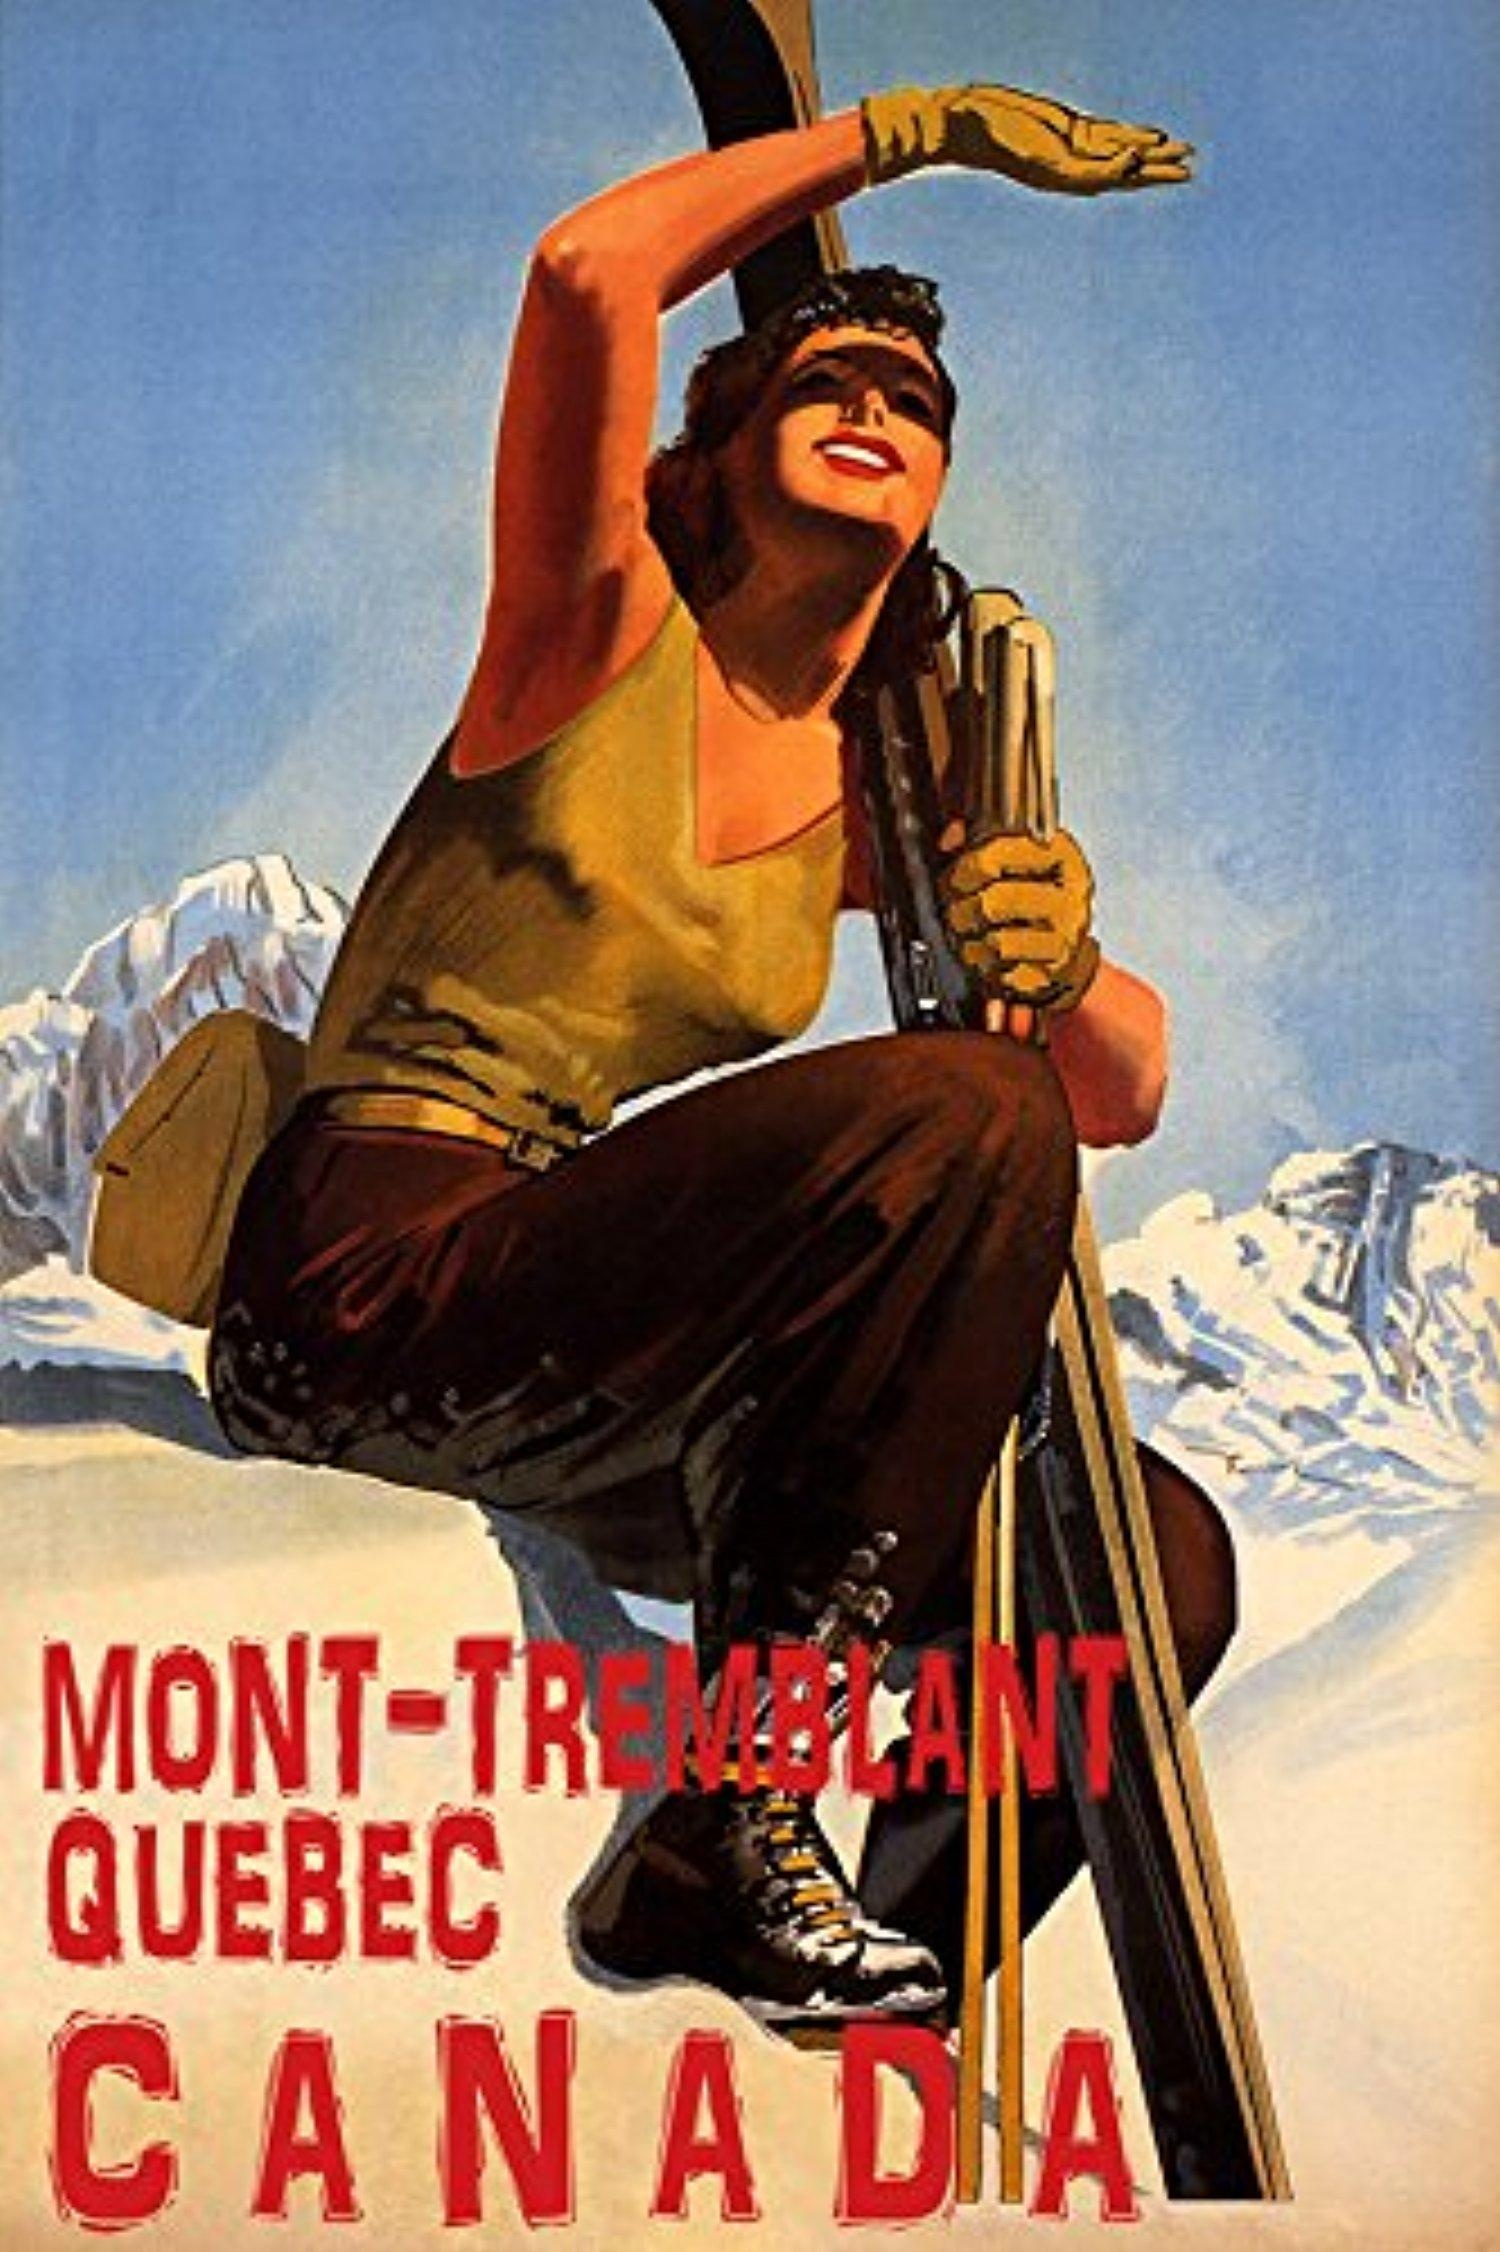 winter-sport-with-sun-mont-tremblant-quebec-canada-ski-mountains-woman-skiing-travel-12-x-16-vintage